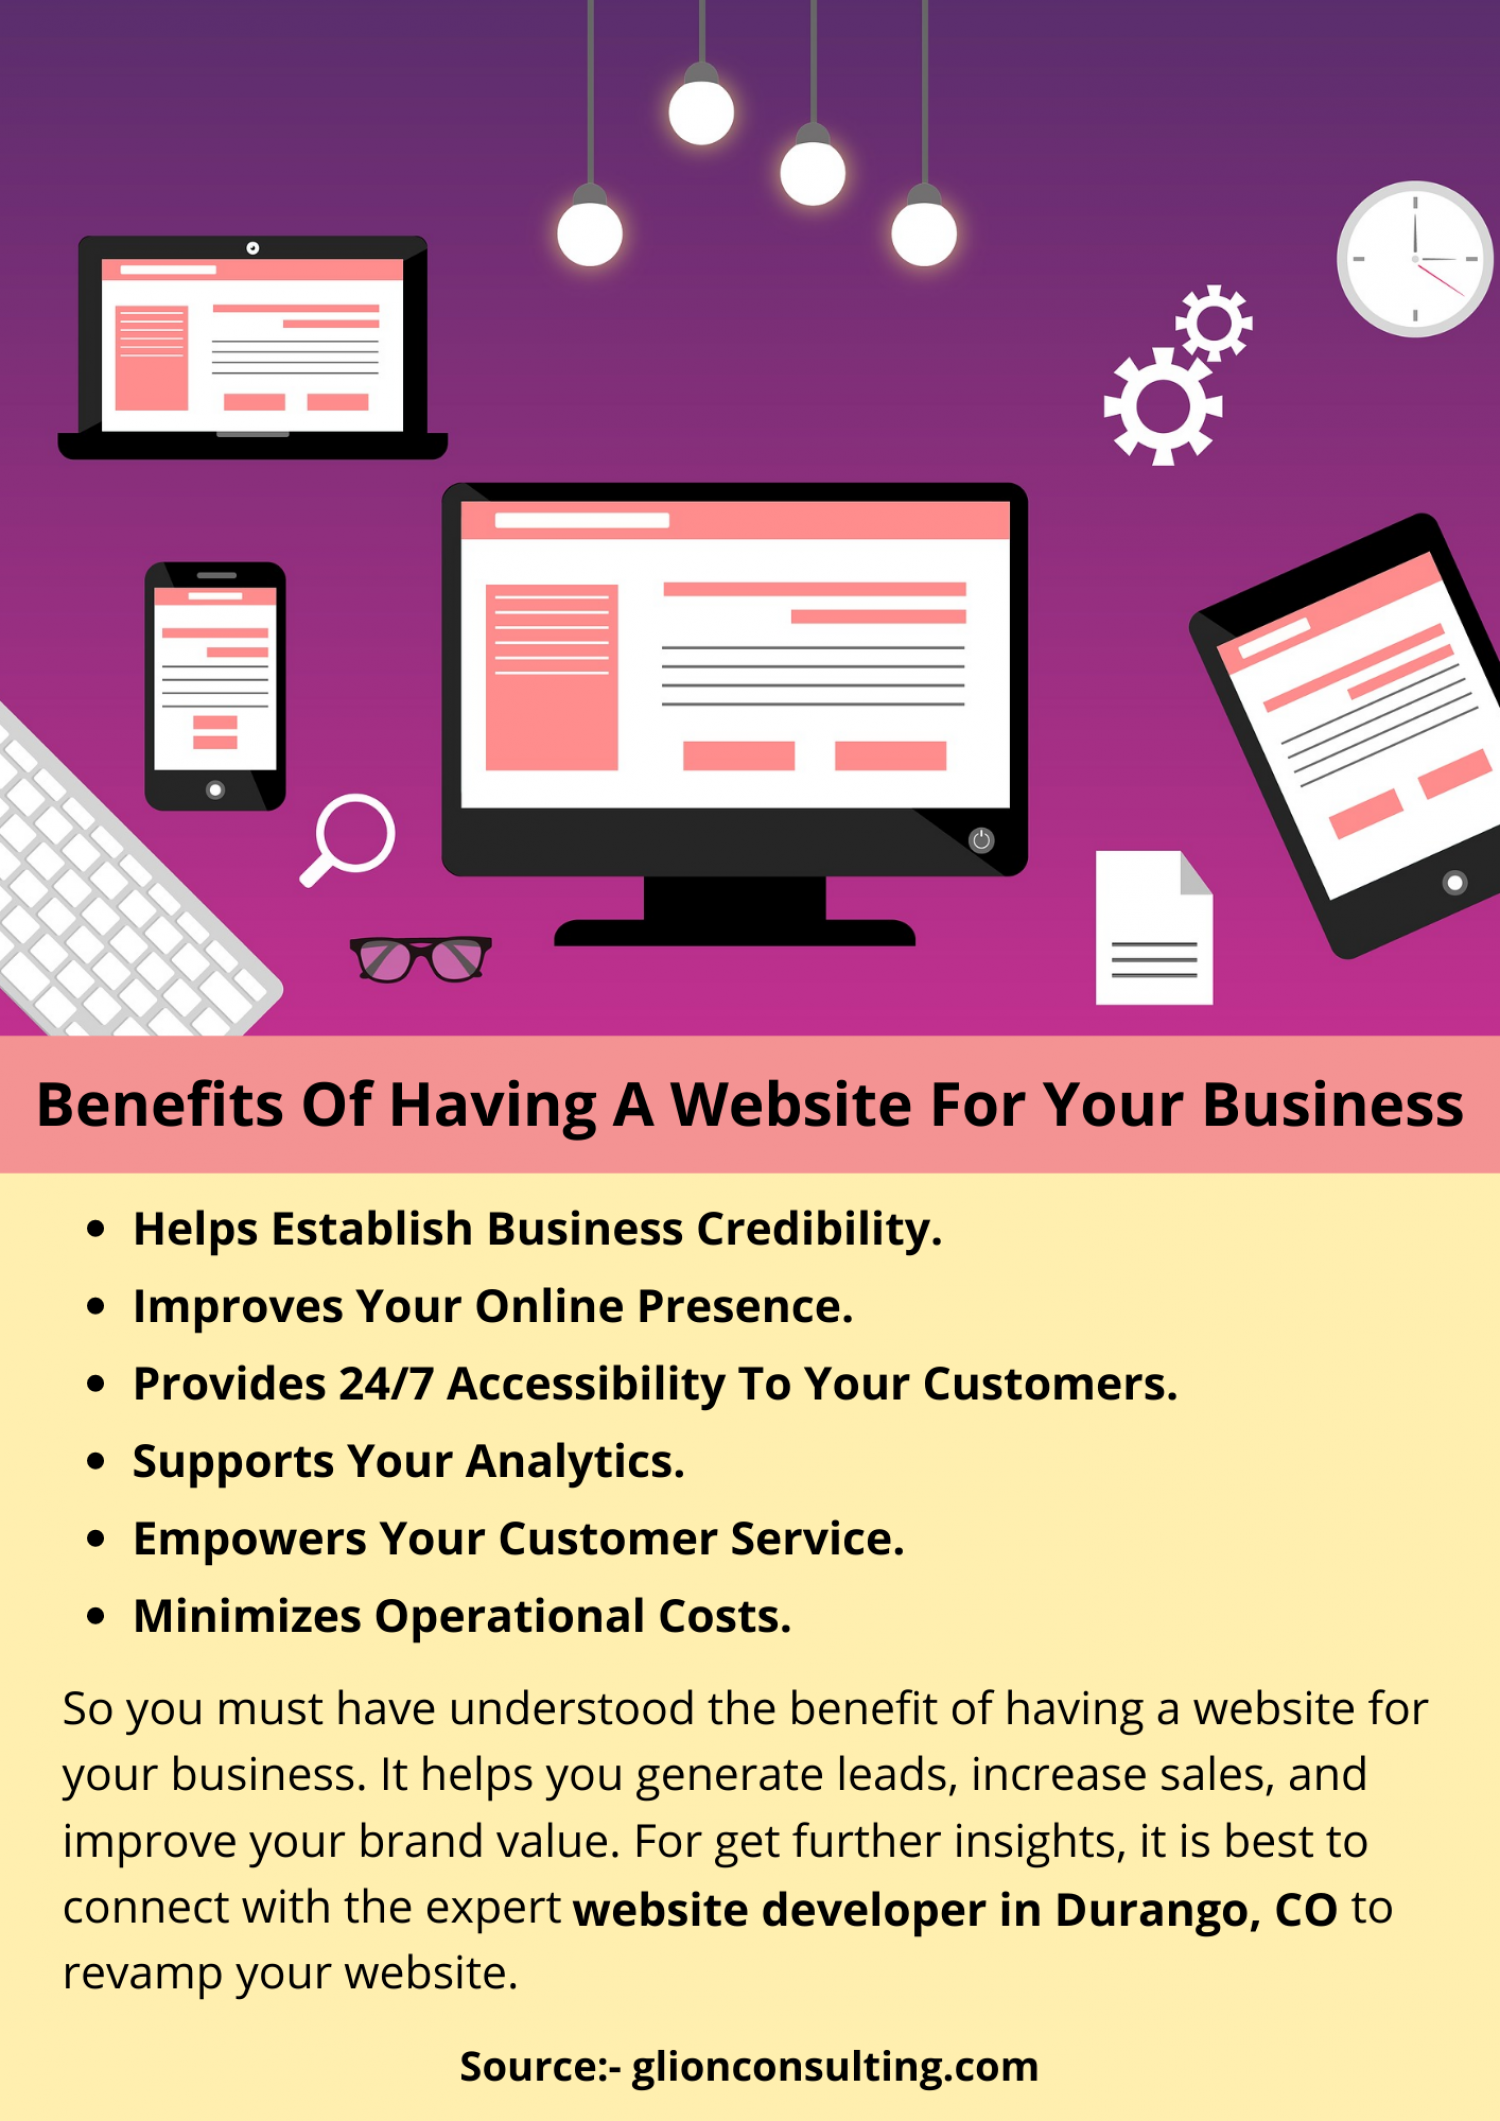 Benefits Of Having A Website For Your Business Infographic